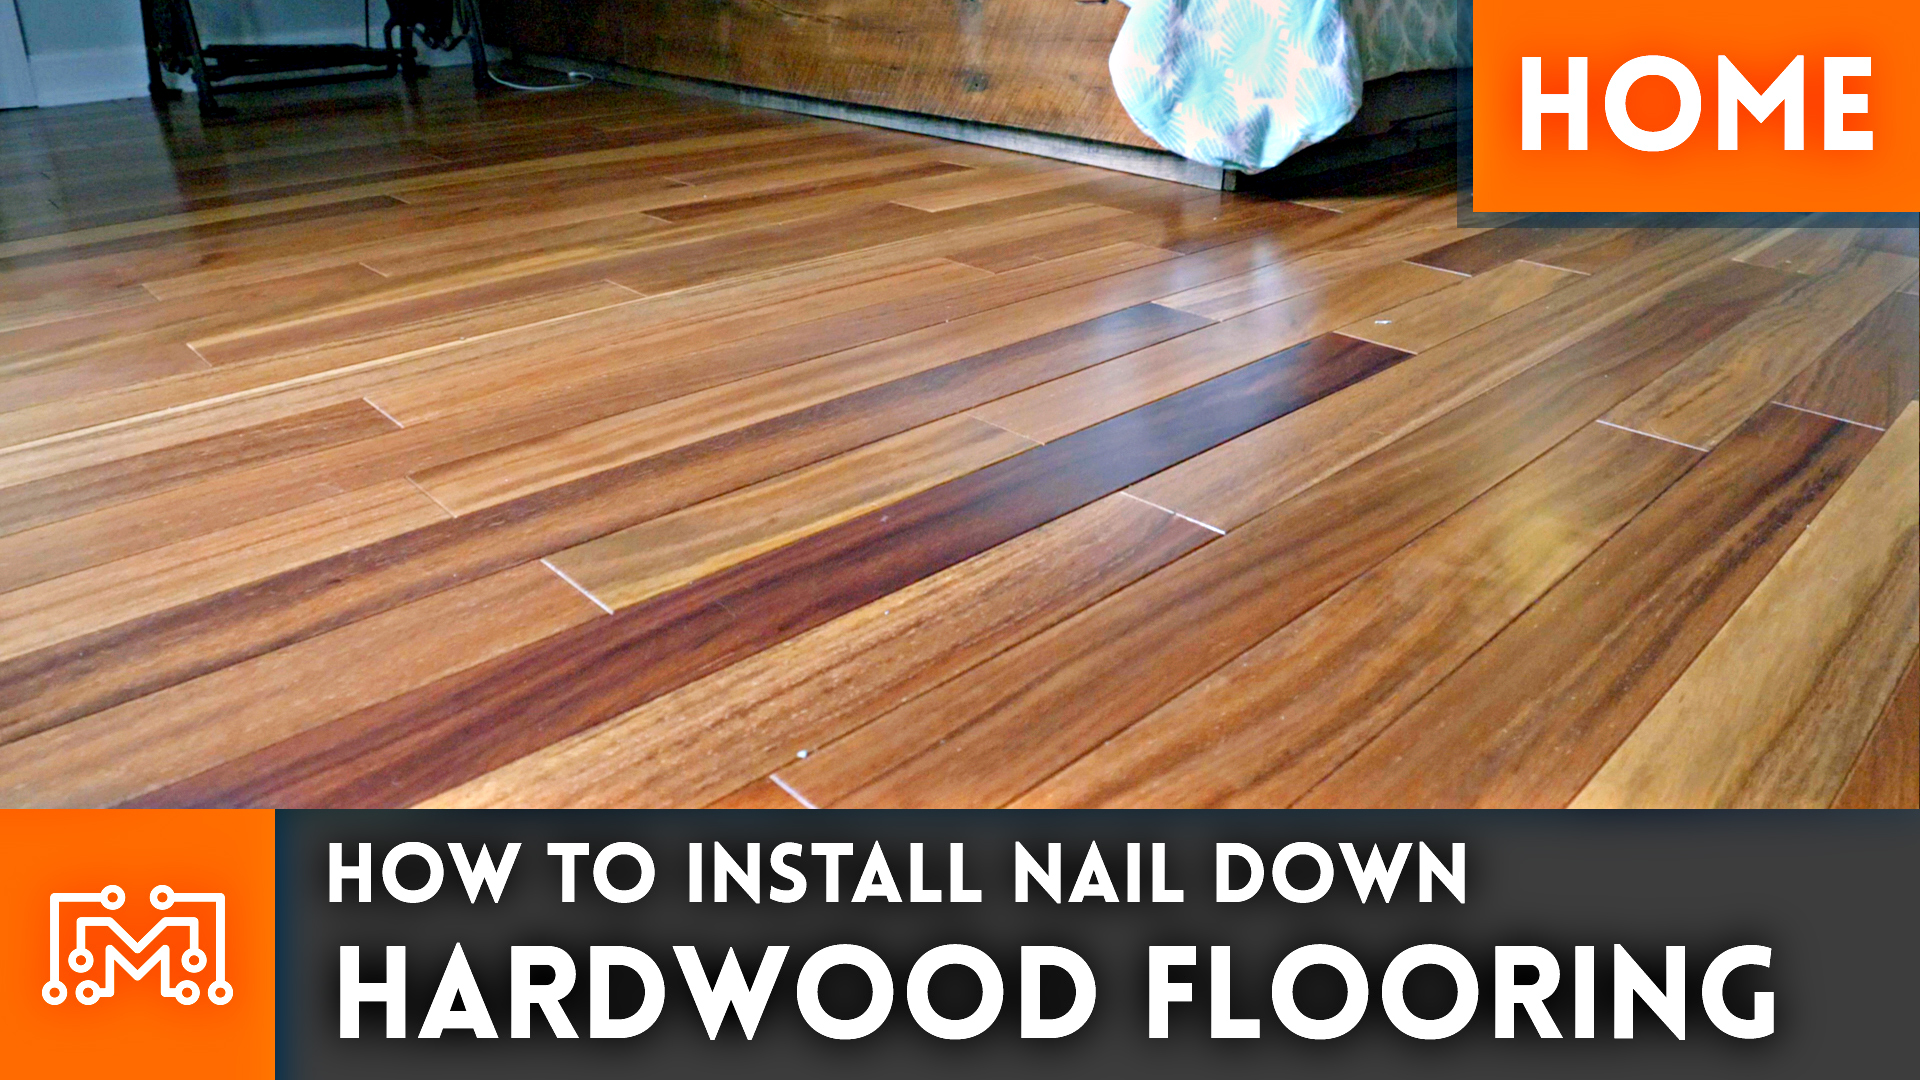 How To Install Nail Down Hardwood Flooring Home